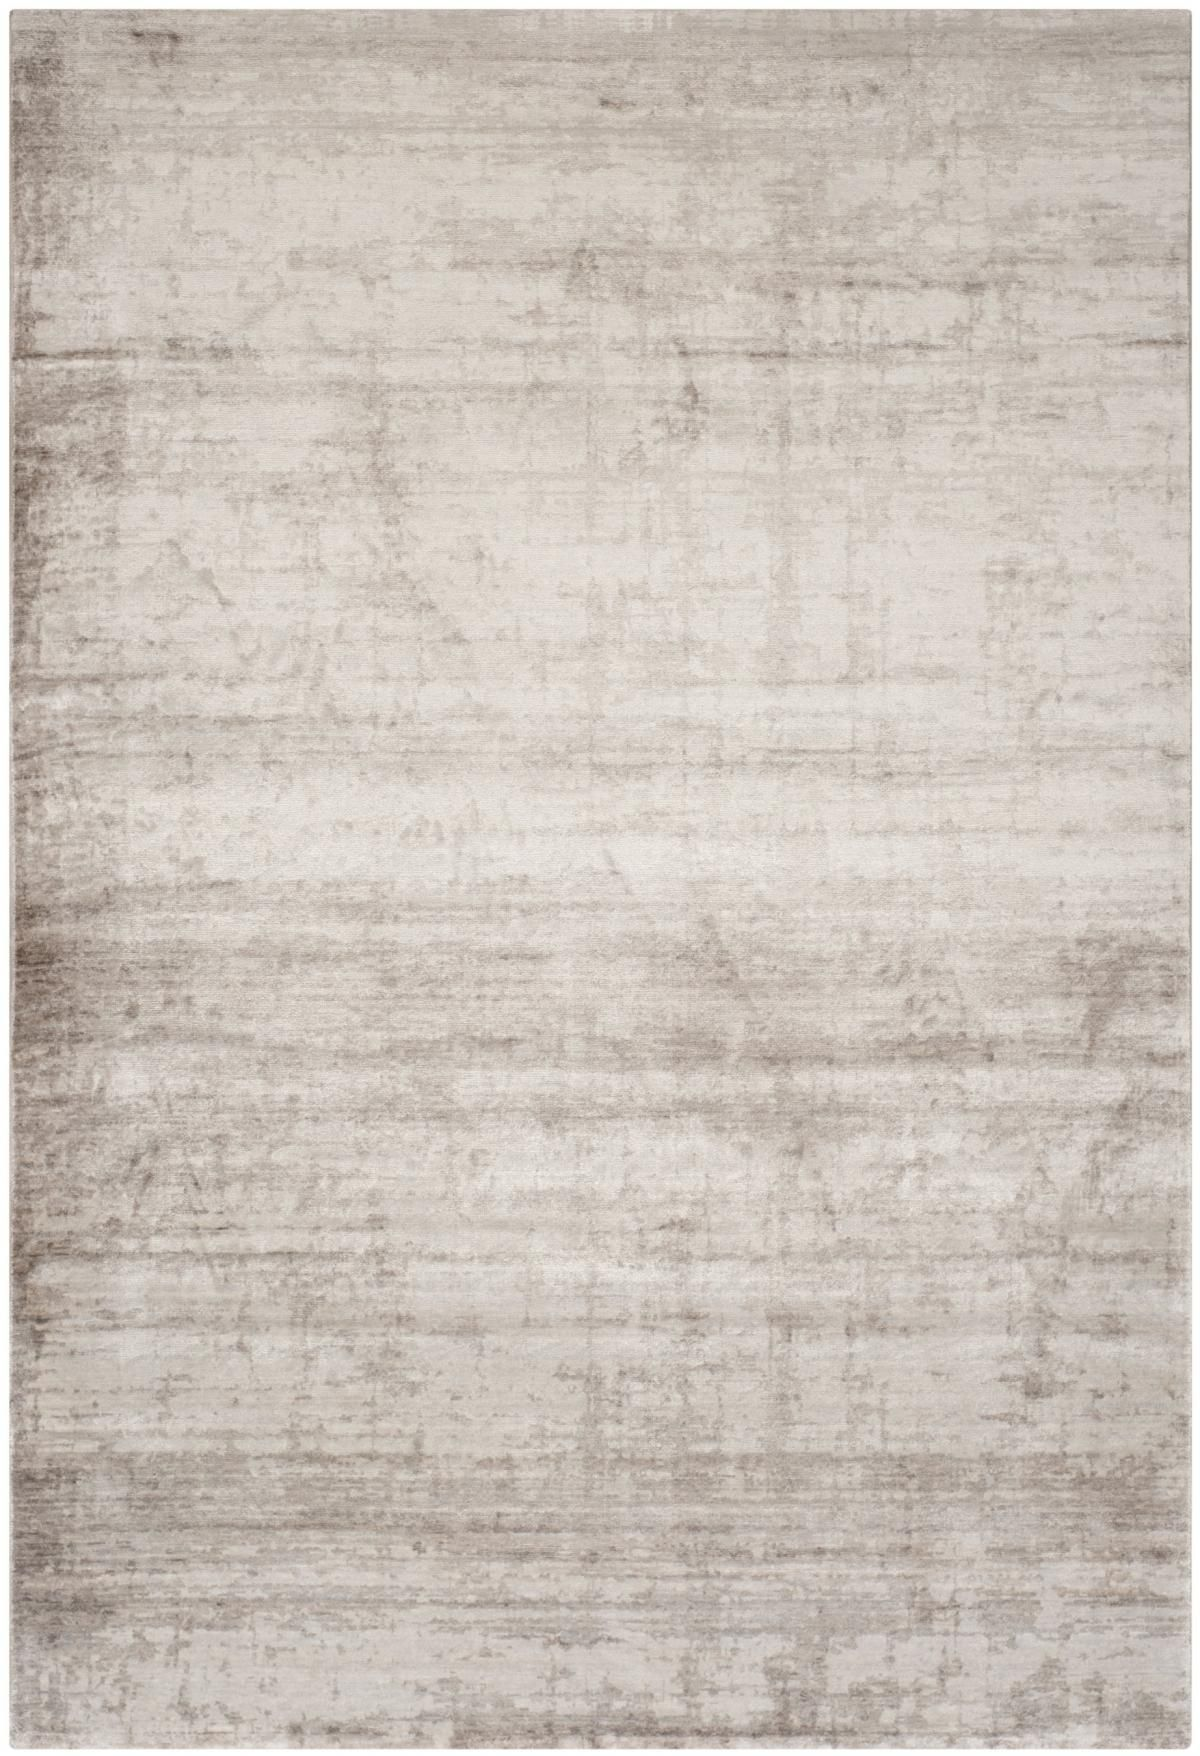 Tib535b Rug From Tibet Collection Inspired By The Artistry Of Tibetan Weavers Beautifully Imagined And Expertly Loomed Features